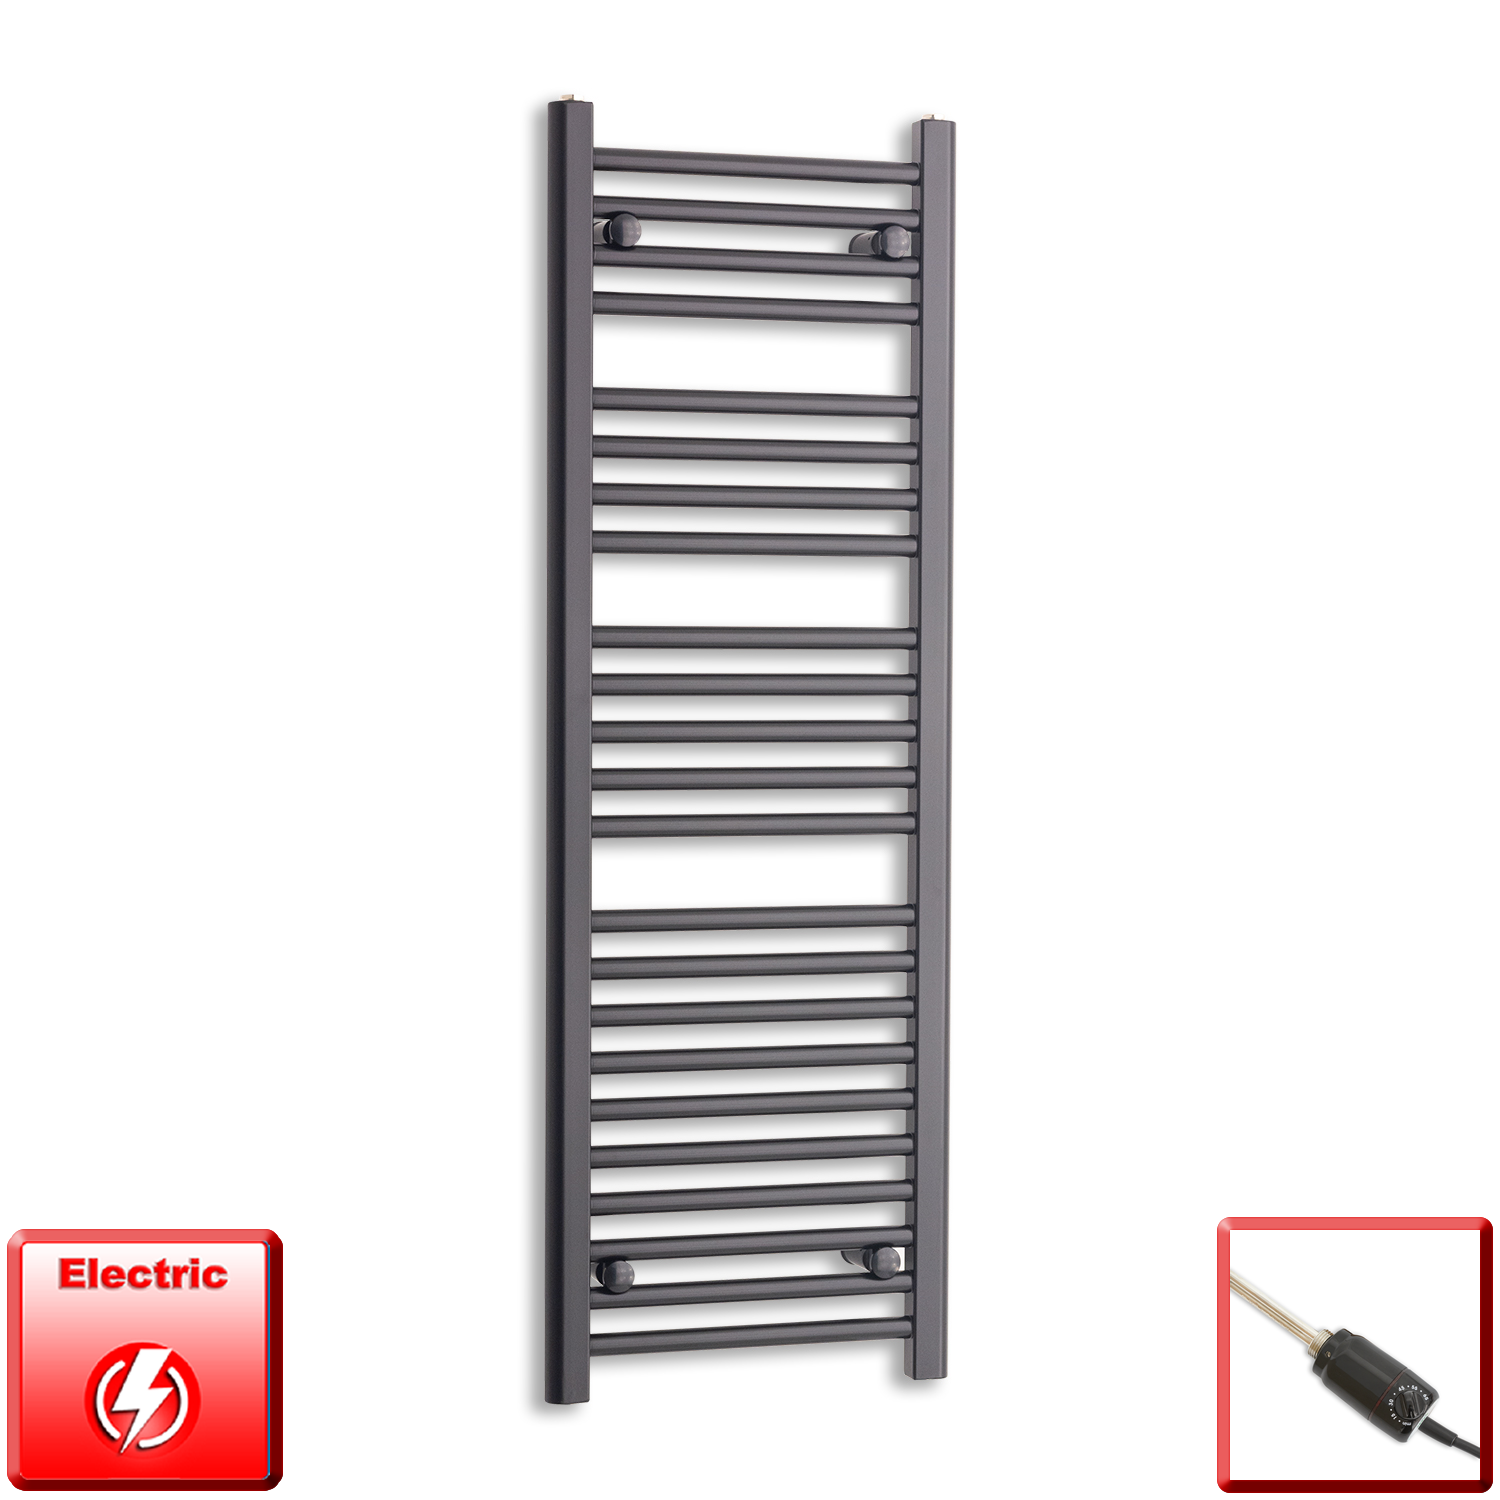 400mm Wide 1200mm High Flat Black Pre-Filled Electric Heated Towel Rail Radiator HTR,GT Thermostatic